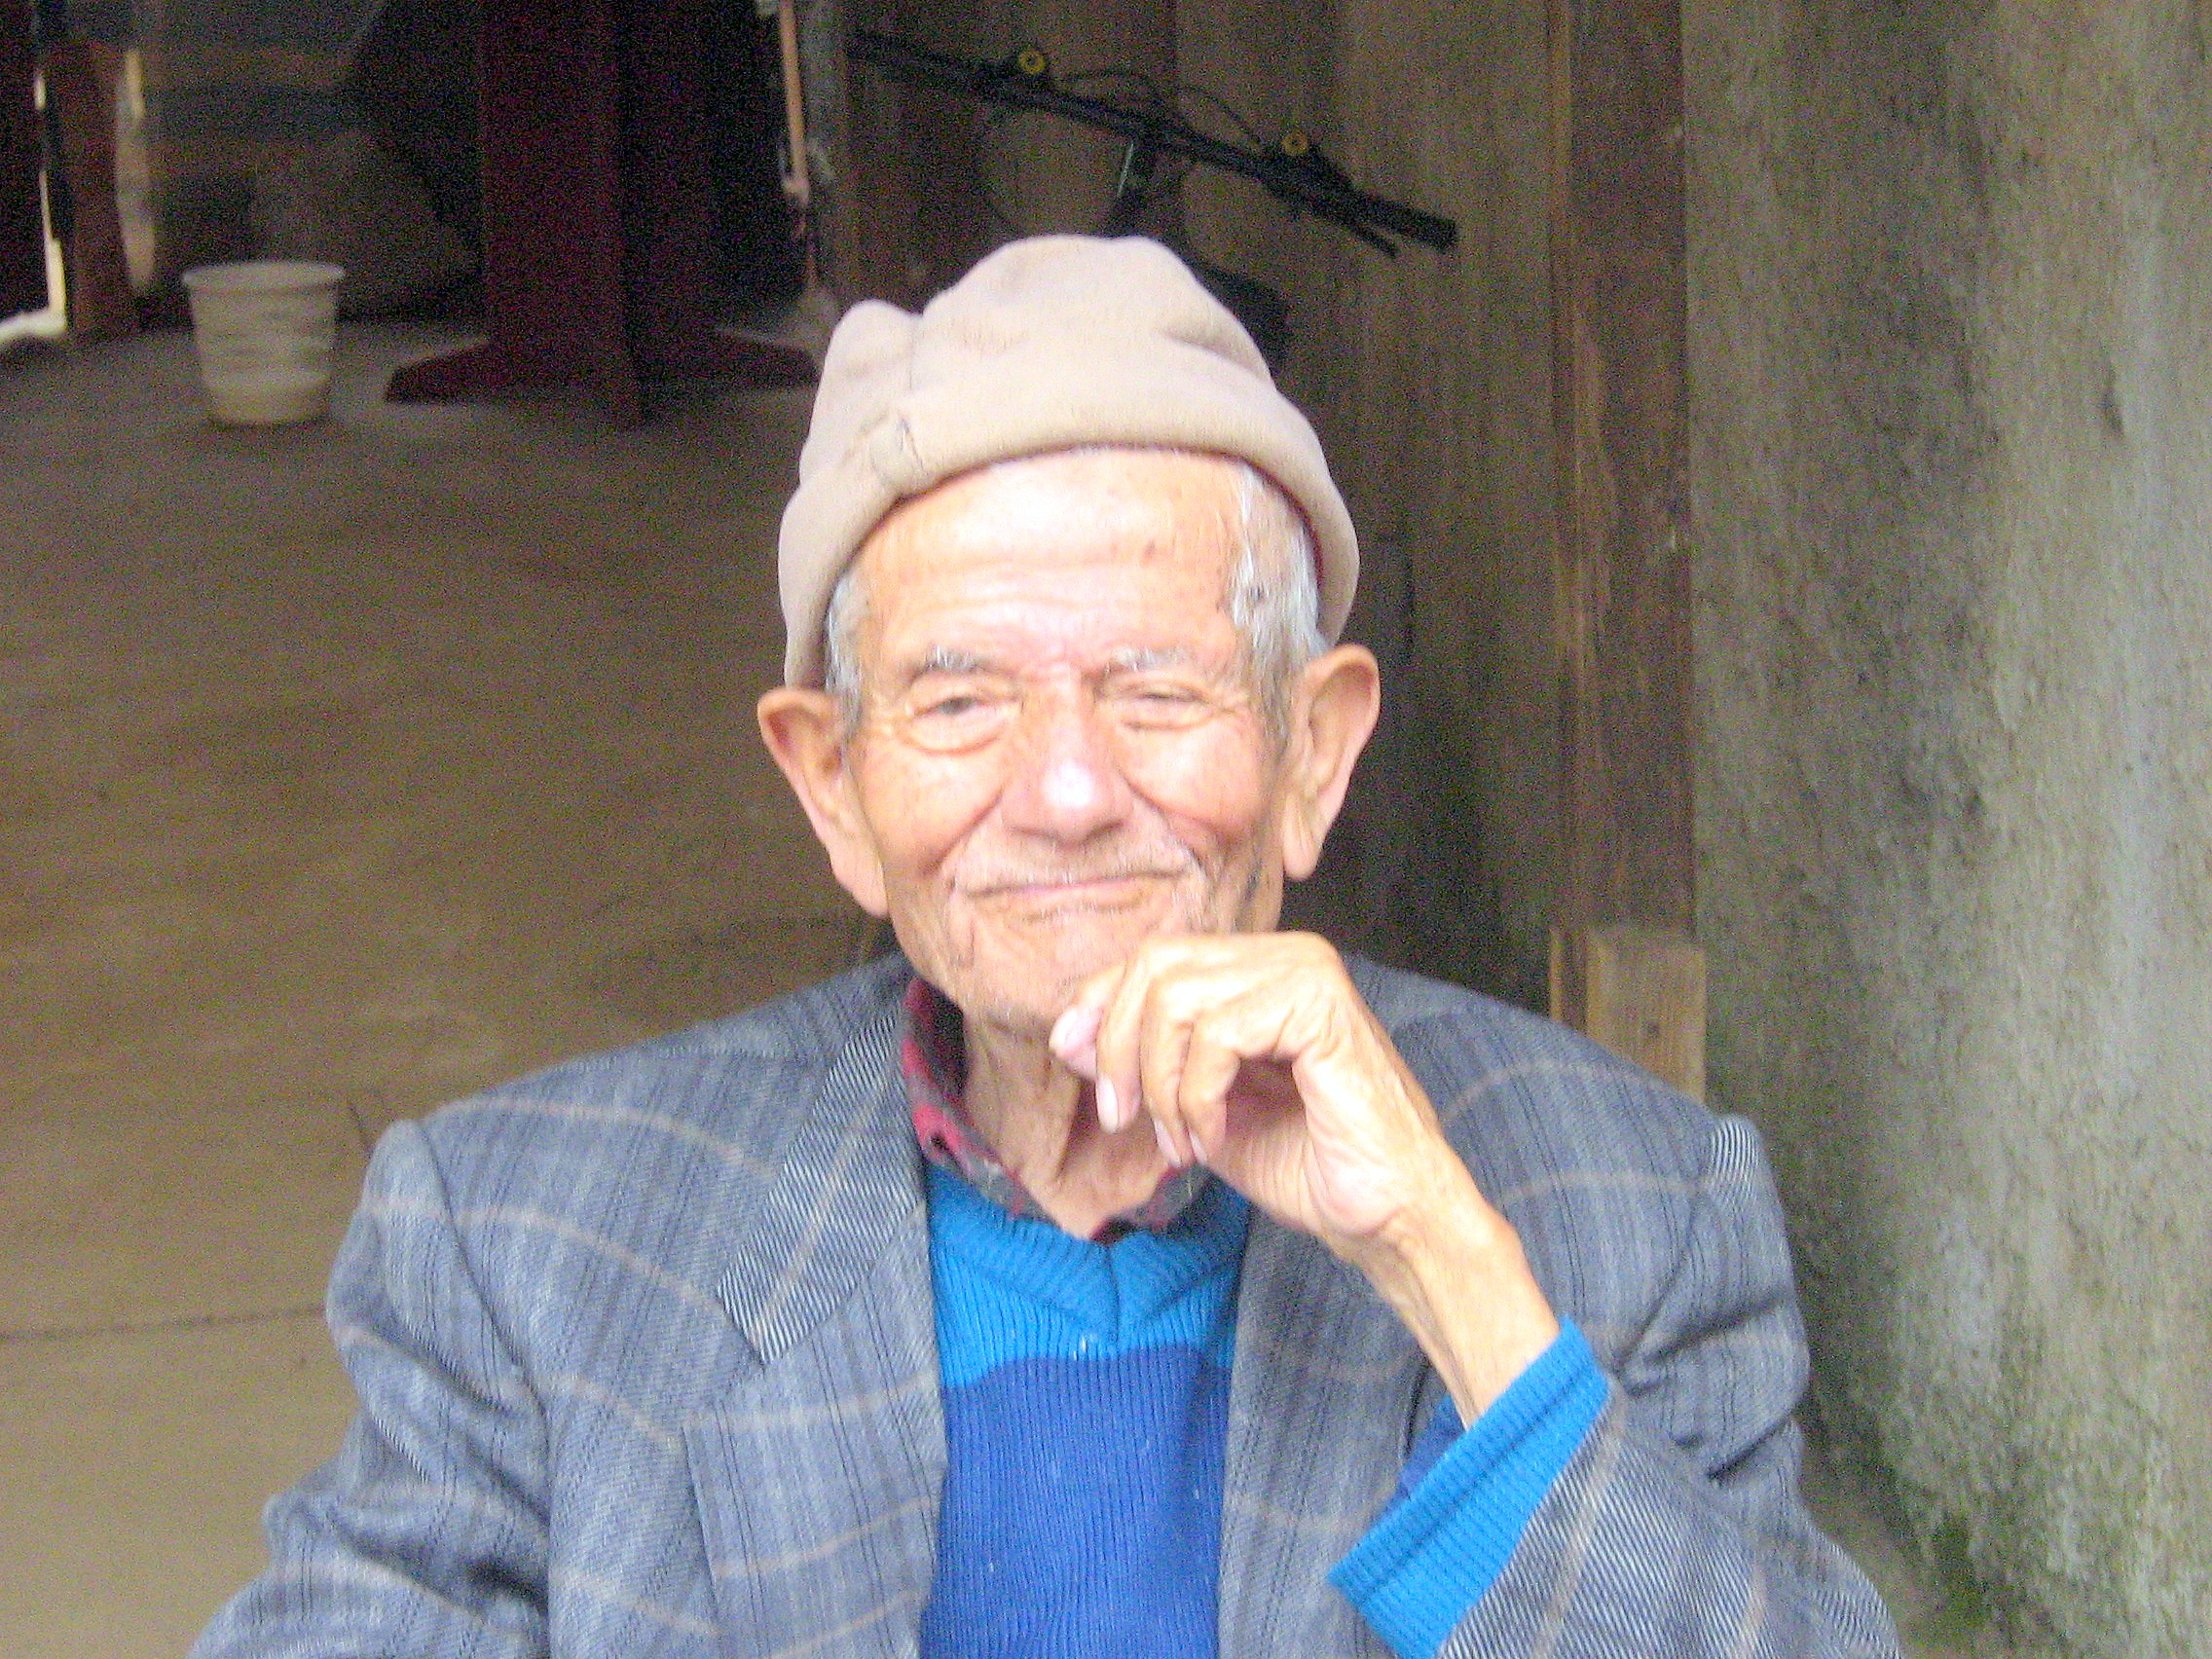 File:My Grandfather Photo from January 17.JPG - Wikimedia Commons